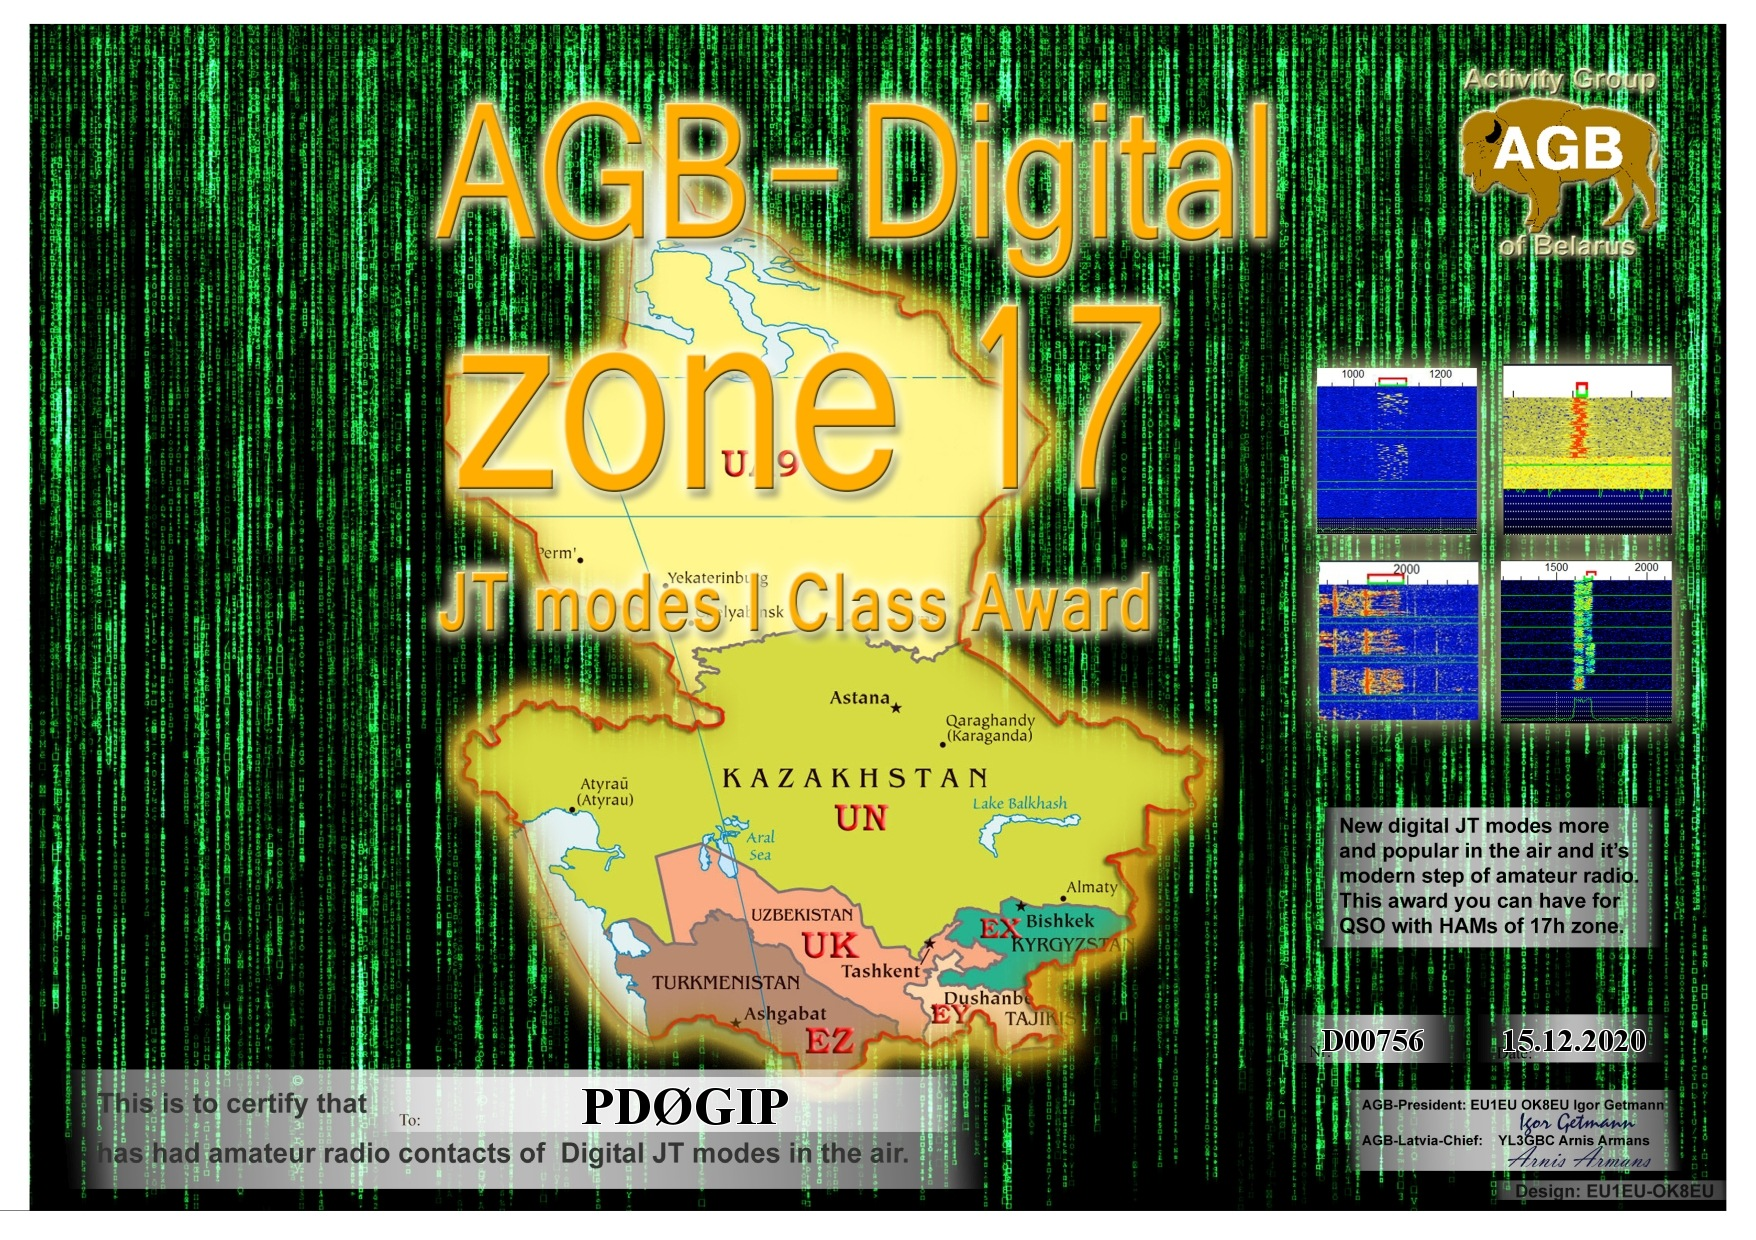 PD0GIP ZONE17 BASIC I AGB